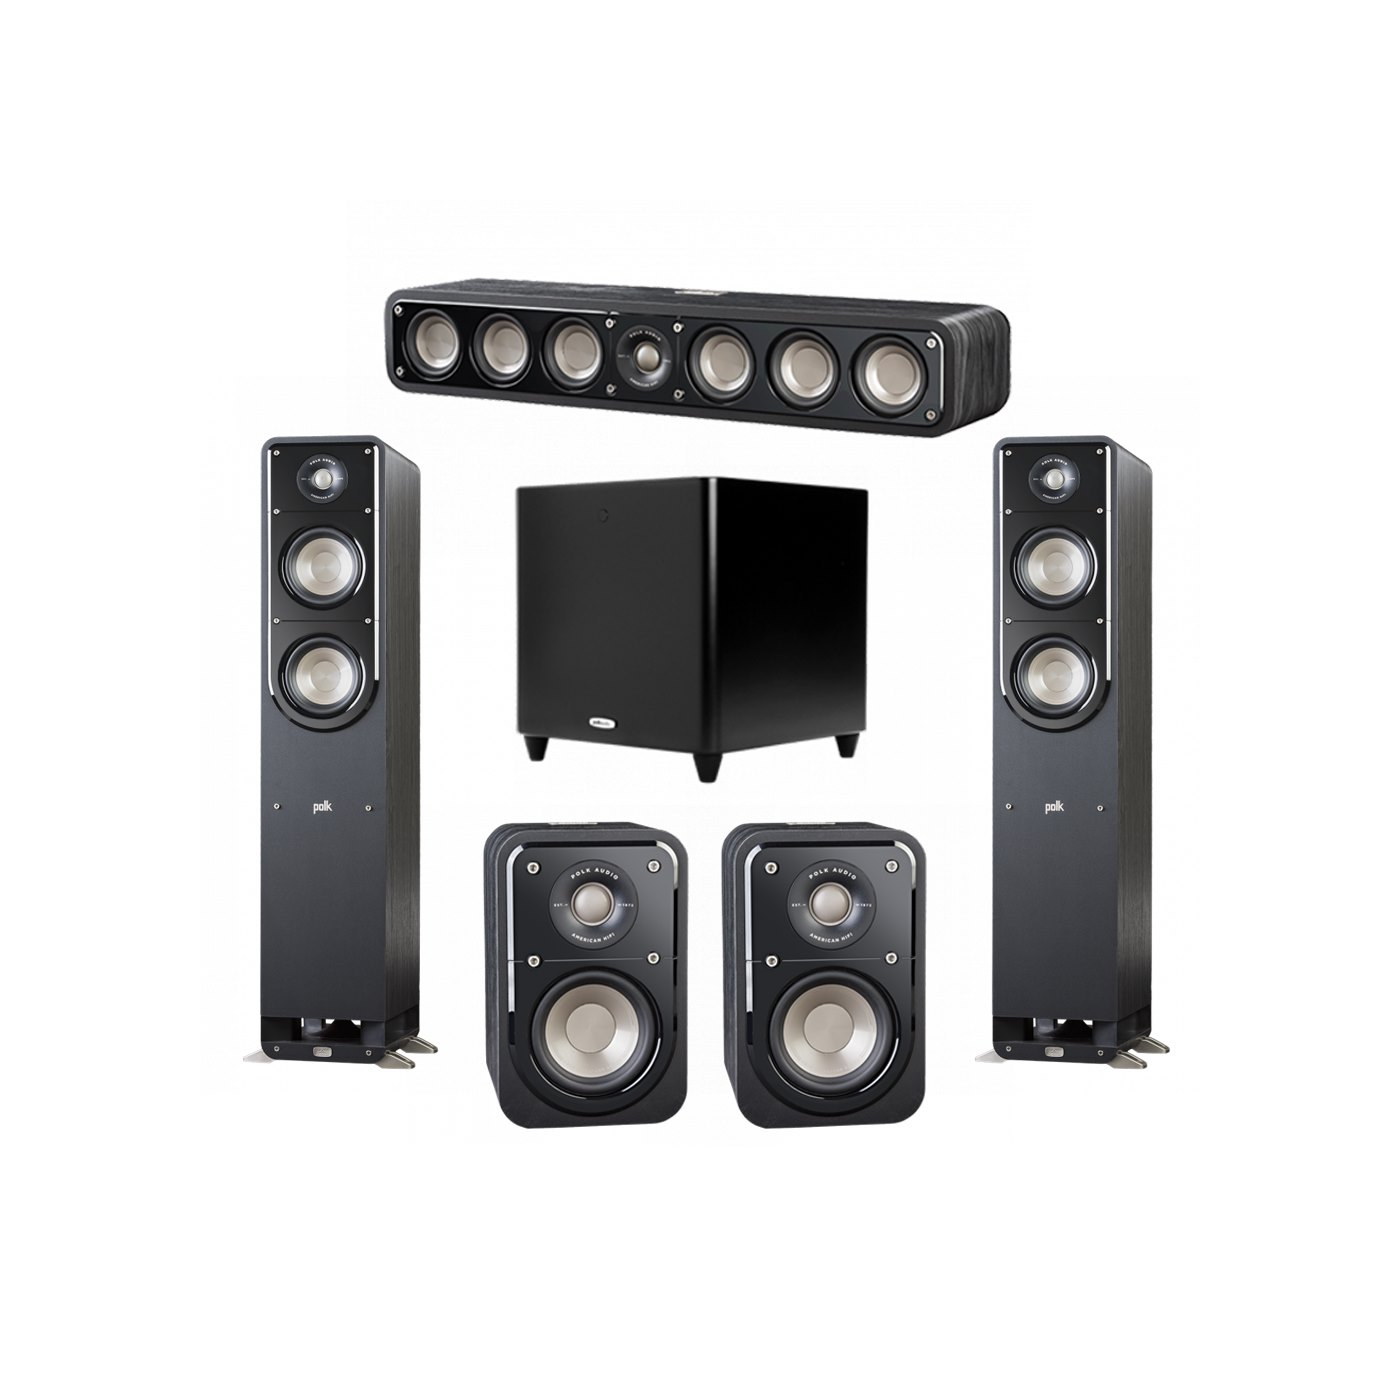 Polk Audio Signature 5.1 System with 2 S50 Tower Speaker, 1 Polk S35 Center Speaker, 2 Polk S10 Surround Speaker, 1 Polk DSW PRO 660 wi Subwoofer